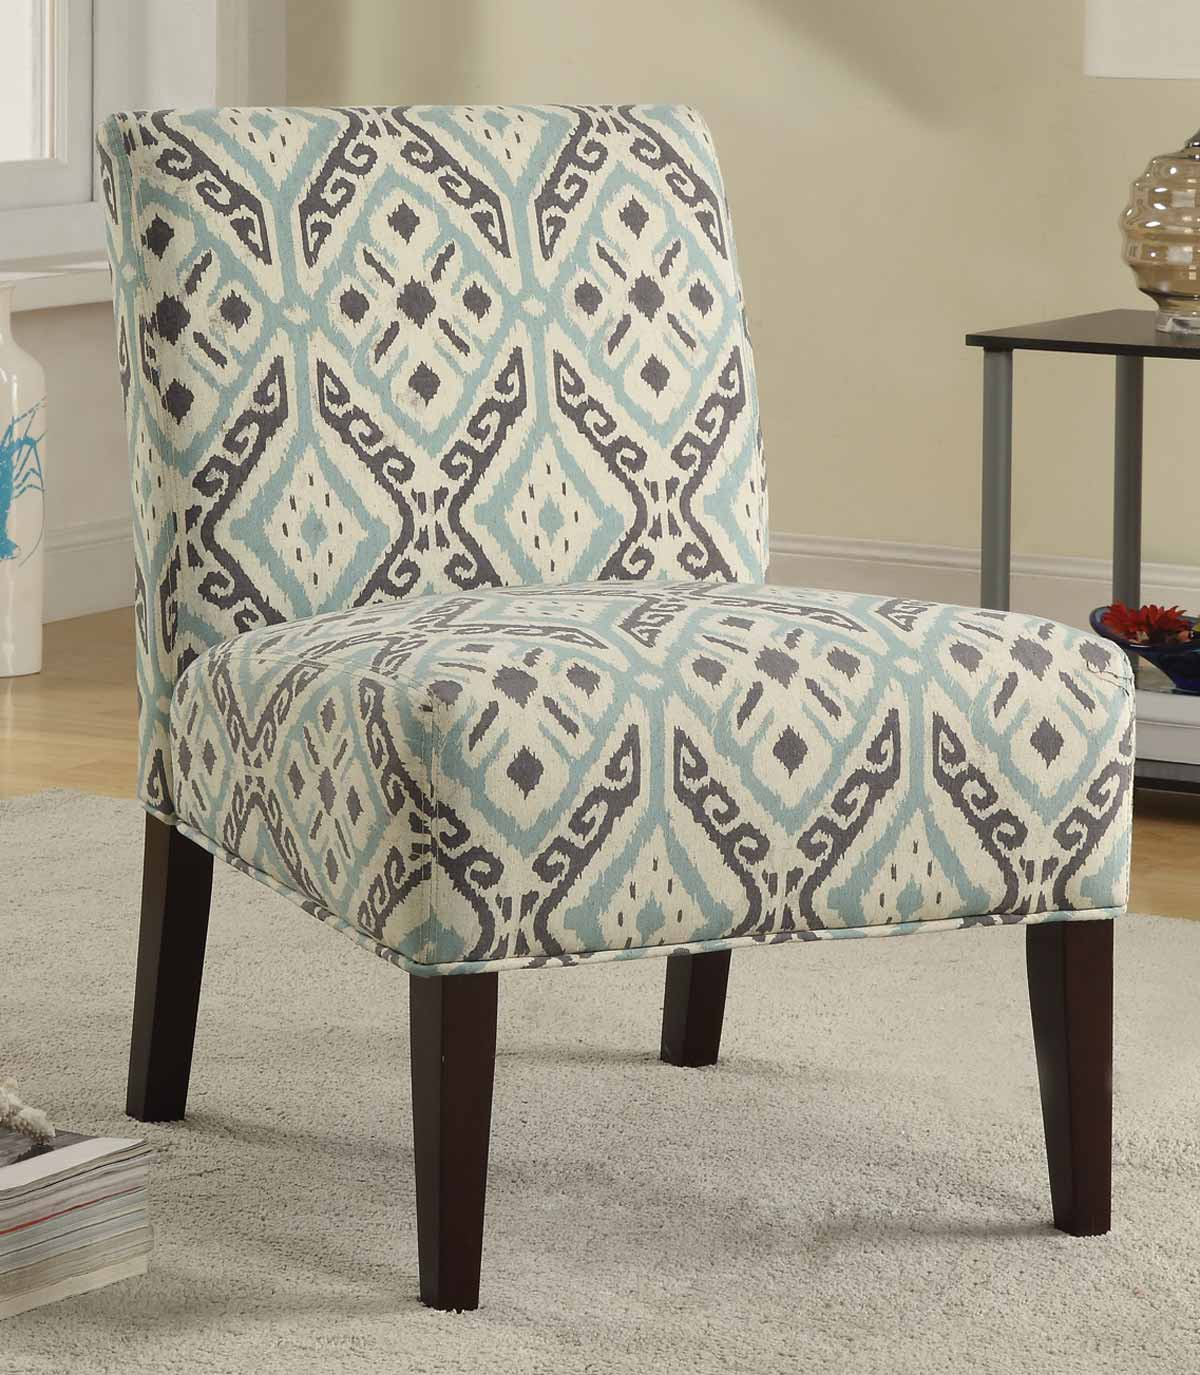 Coaster 902191 Accent Chair - Brown/Light Blue 902191 at ...